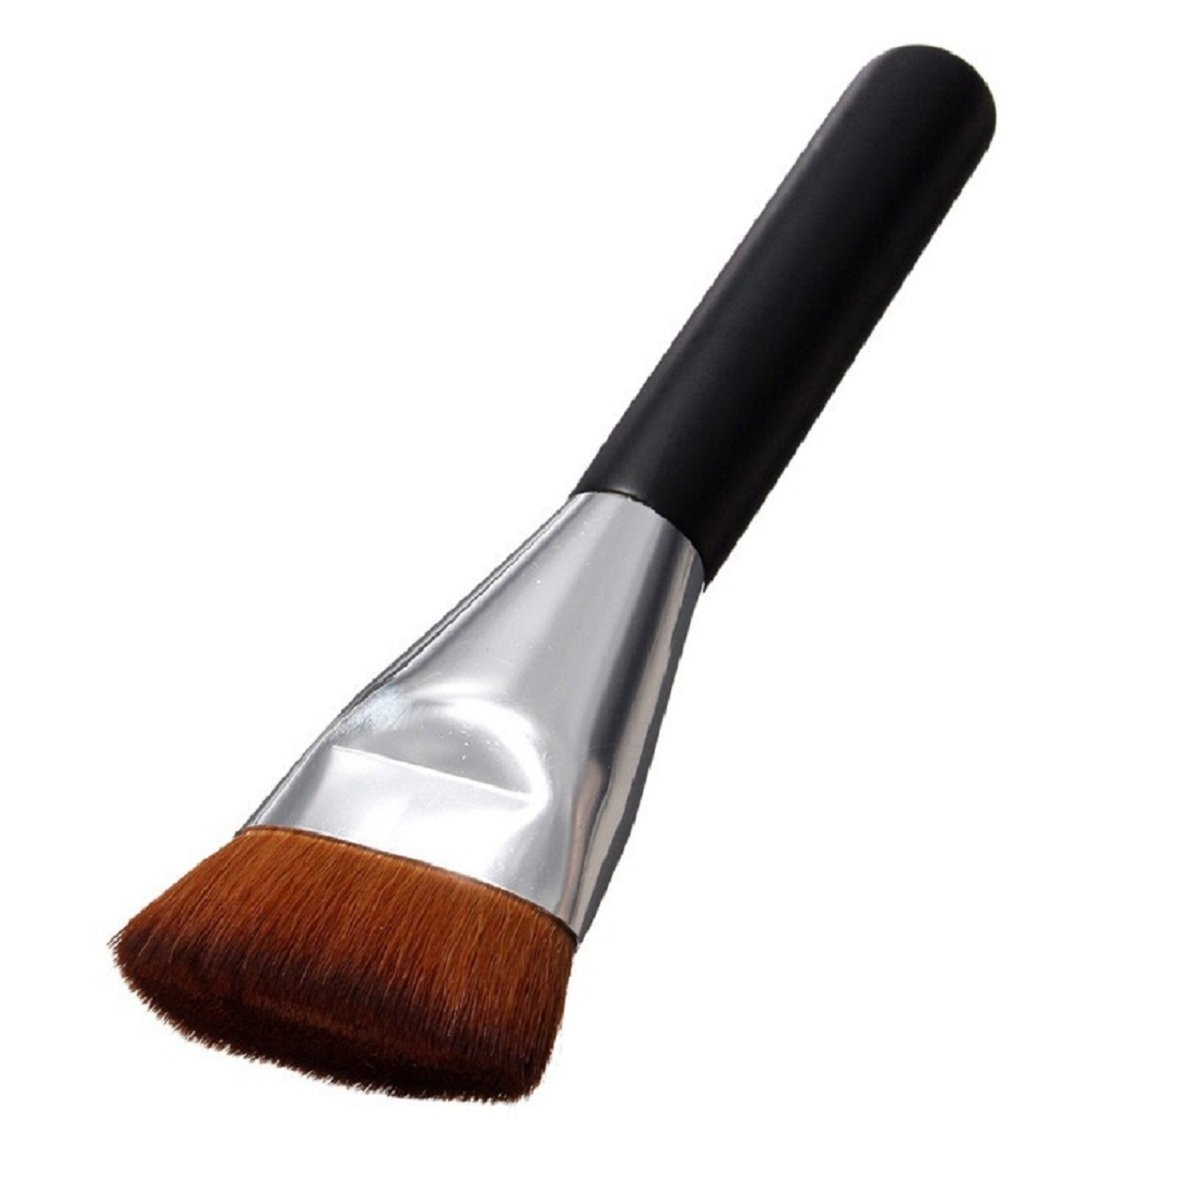 Amison Flat Contour Makeup Brush SONGQEE(TM) Amison-300